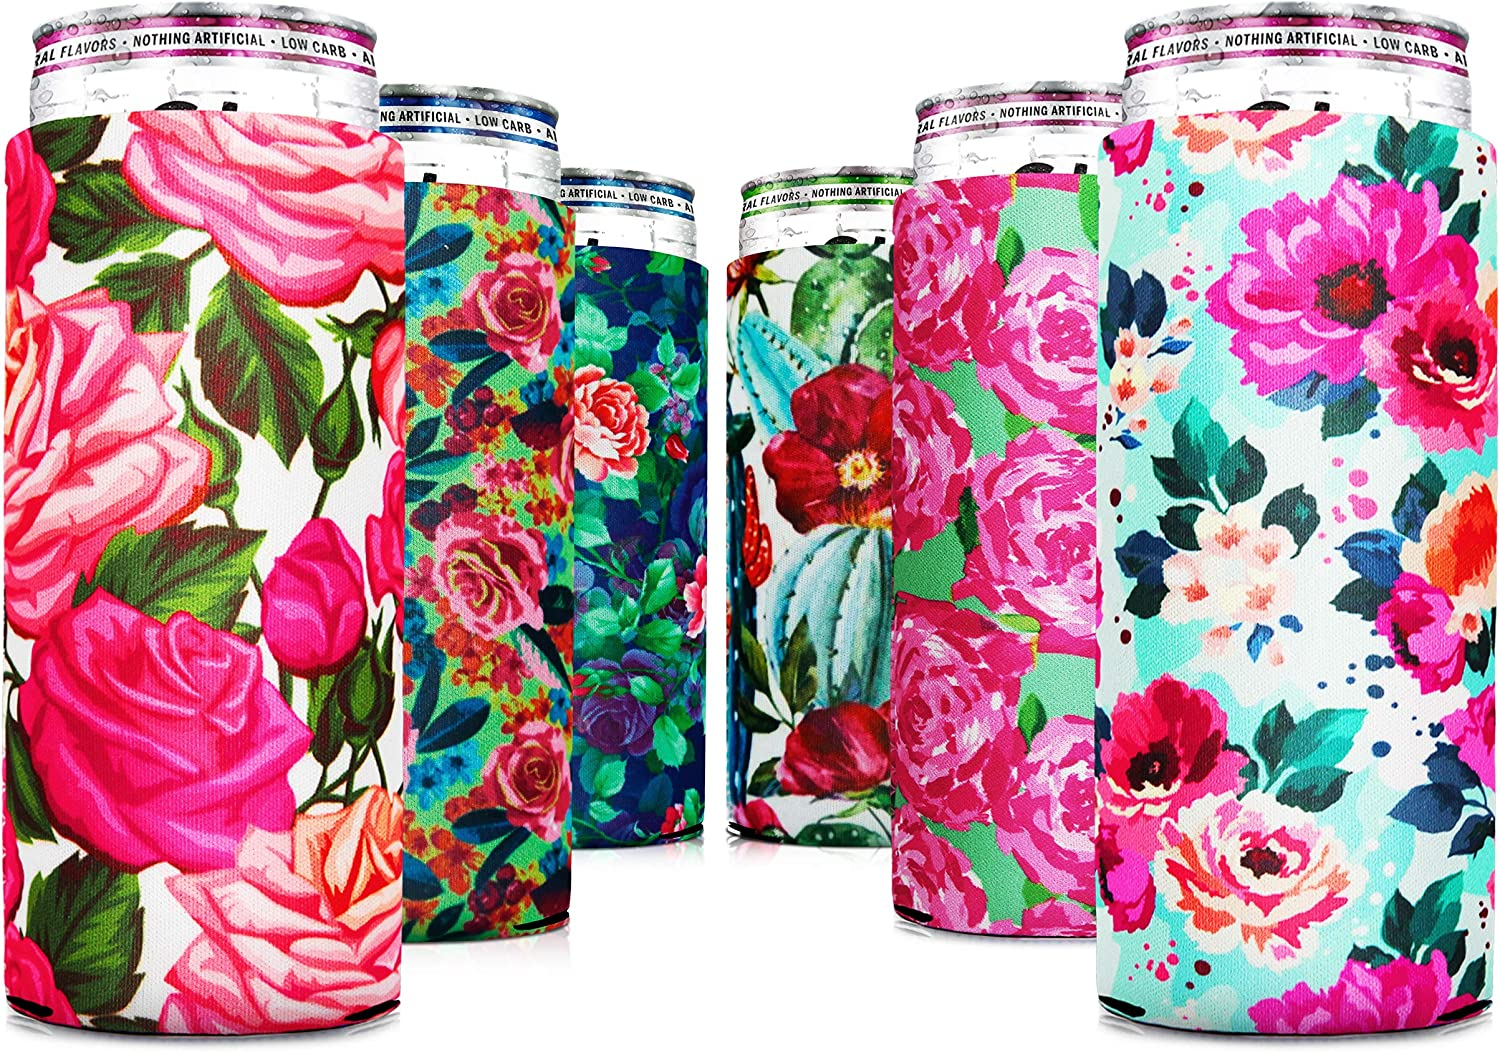 Skinny Can Coozie Slim Can Cooler for Slim Beer & Hard Seltzer, [ 6 PCS ] Skinny Beer Cans Coolie Skinny Insulators, Claw Can Cooler Sleeve Flower